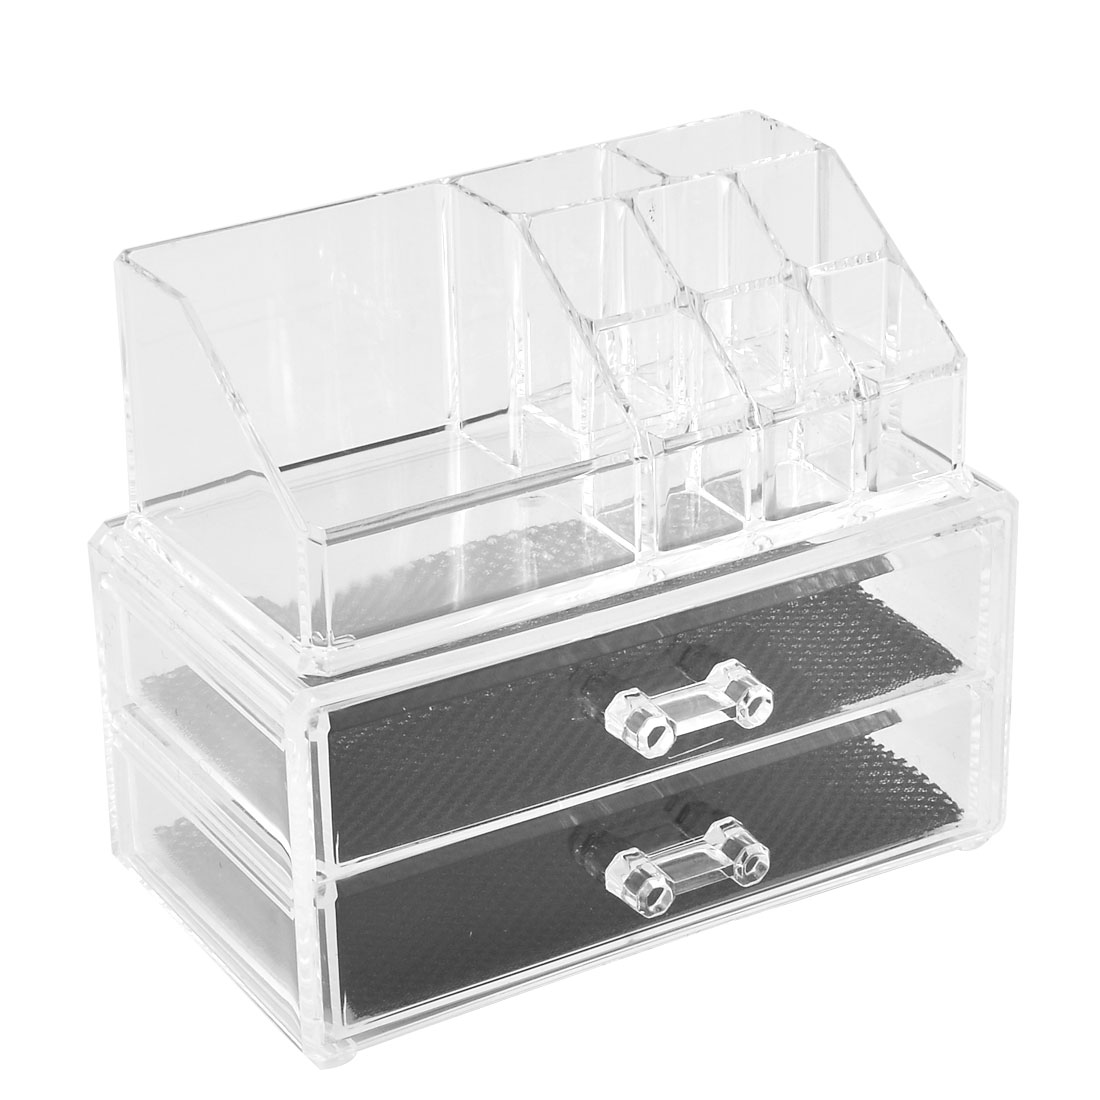 Home Acrylic Jewelry Cosmetic Box Lipstick Organizer Display Drawer Set 2 in 1